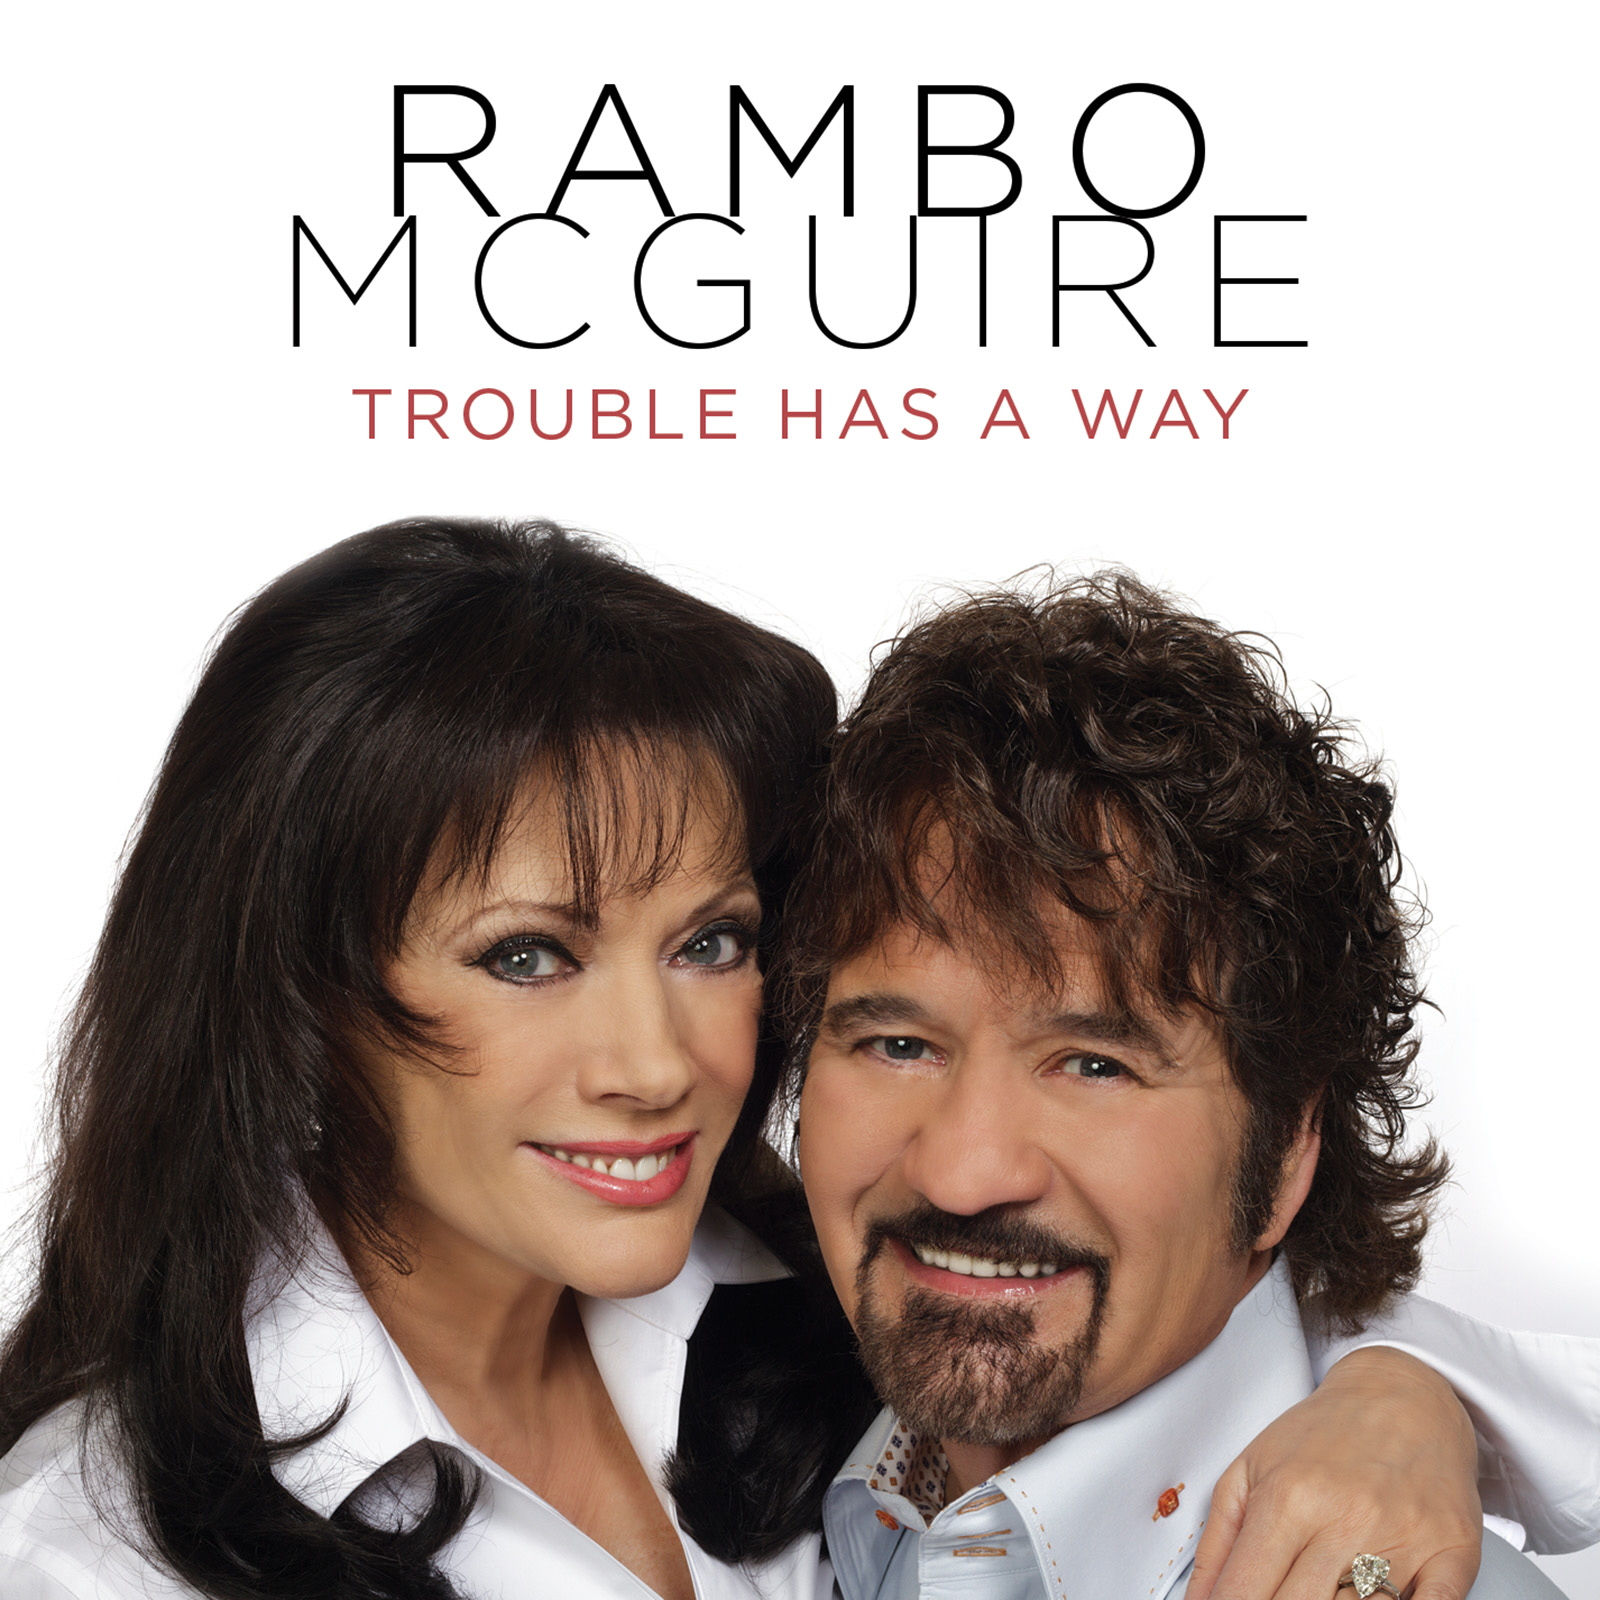 Rambo McGuire - Trouble Has A Way single cover.jpg